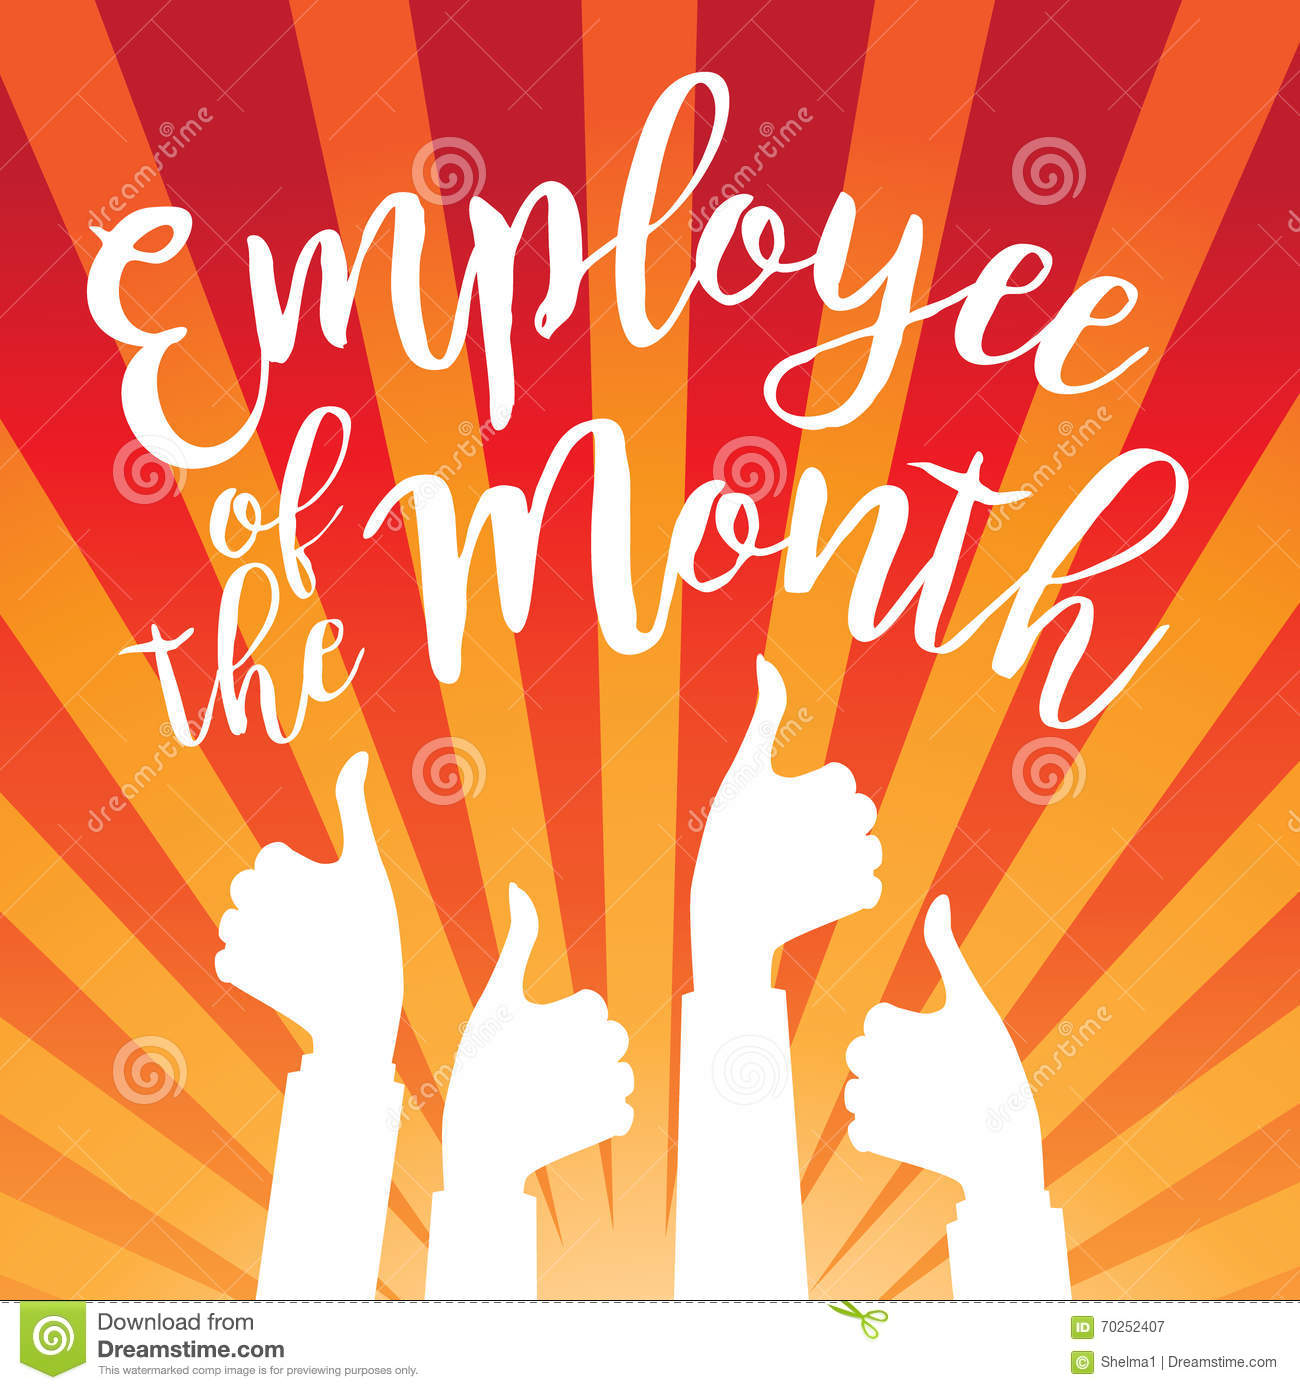 Employee of the month clipart 9 » Clipart Station.